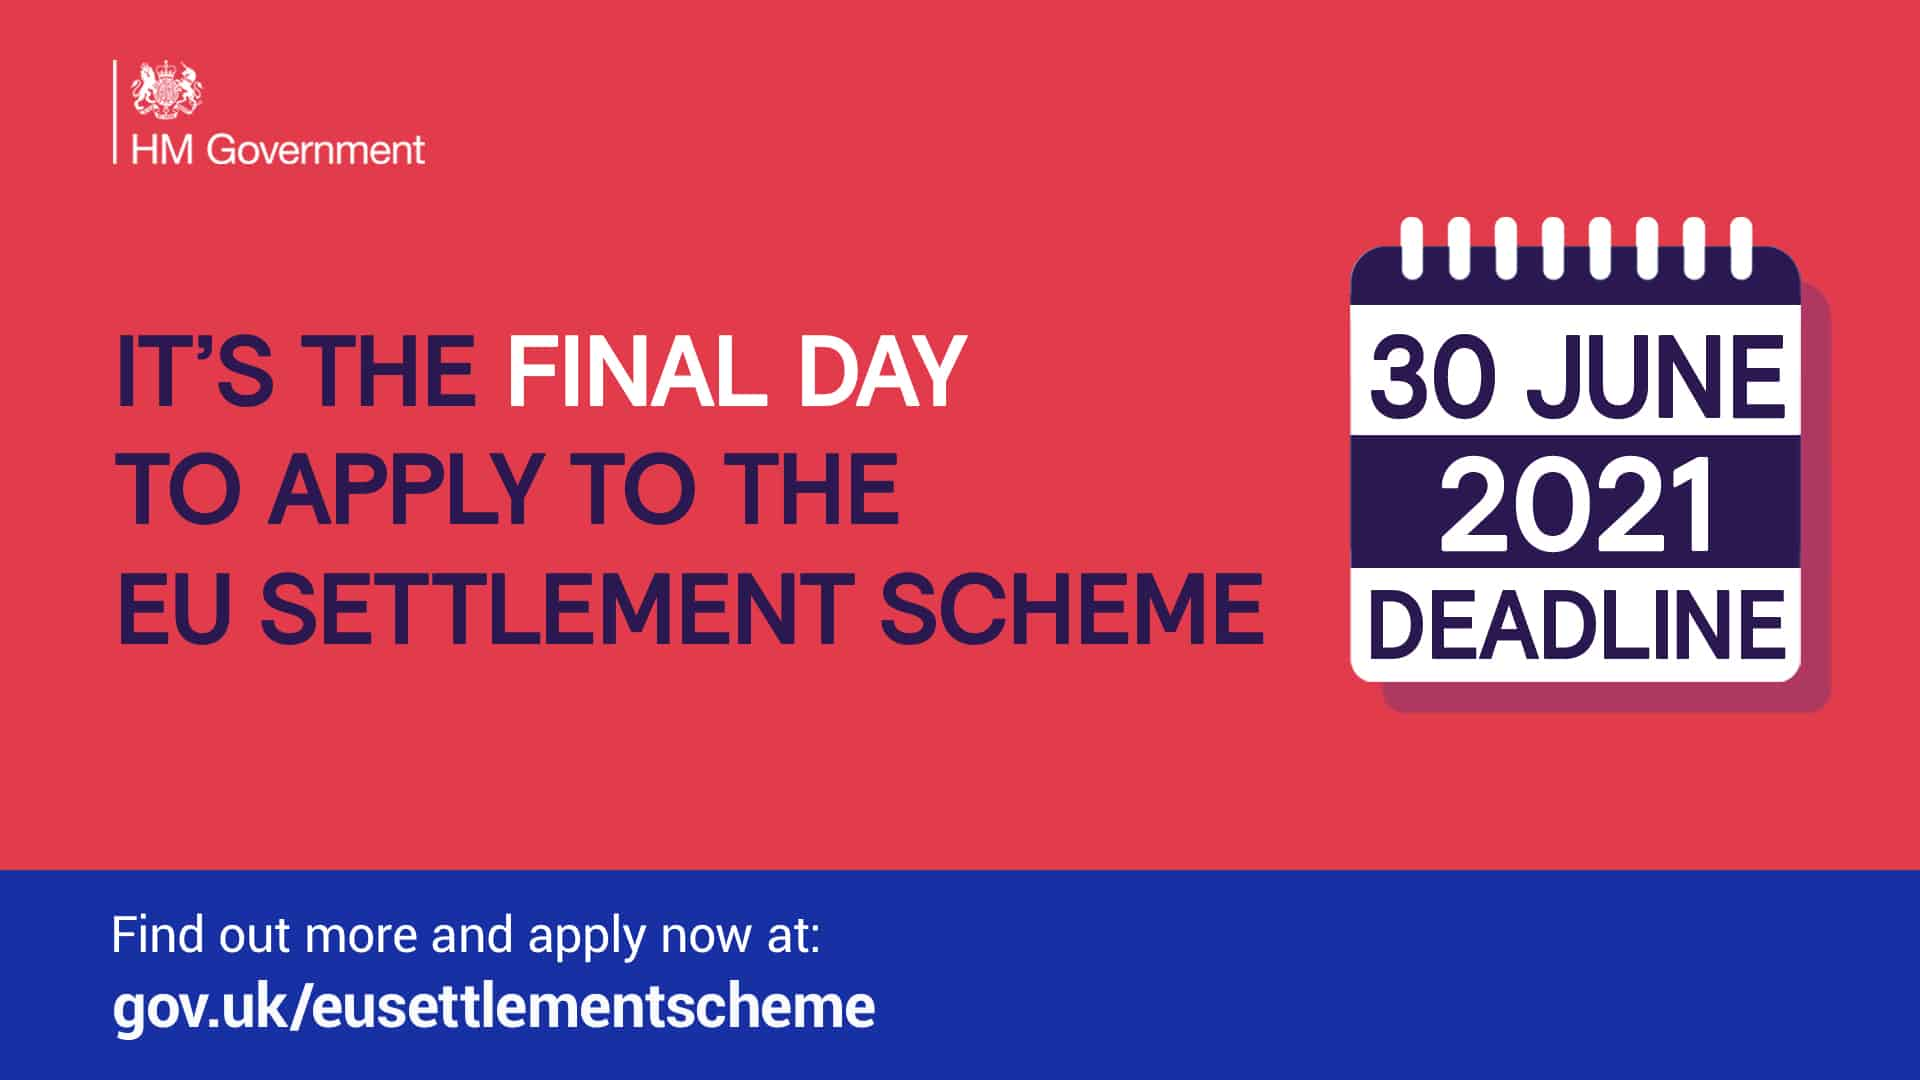 """Poster - """"It's the final day to apply to the EU Settlement Scheme - 30 June 2021 deadline. Find out more and apply now at gov.uk/eusettlementscheme"""""""